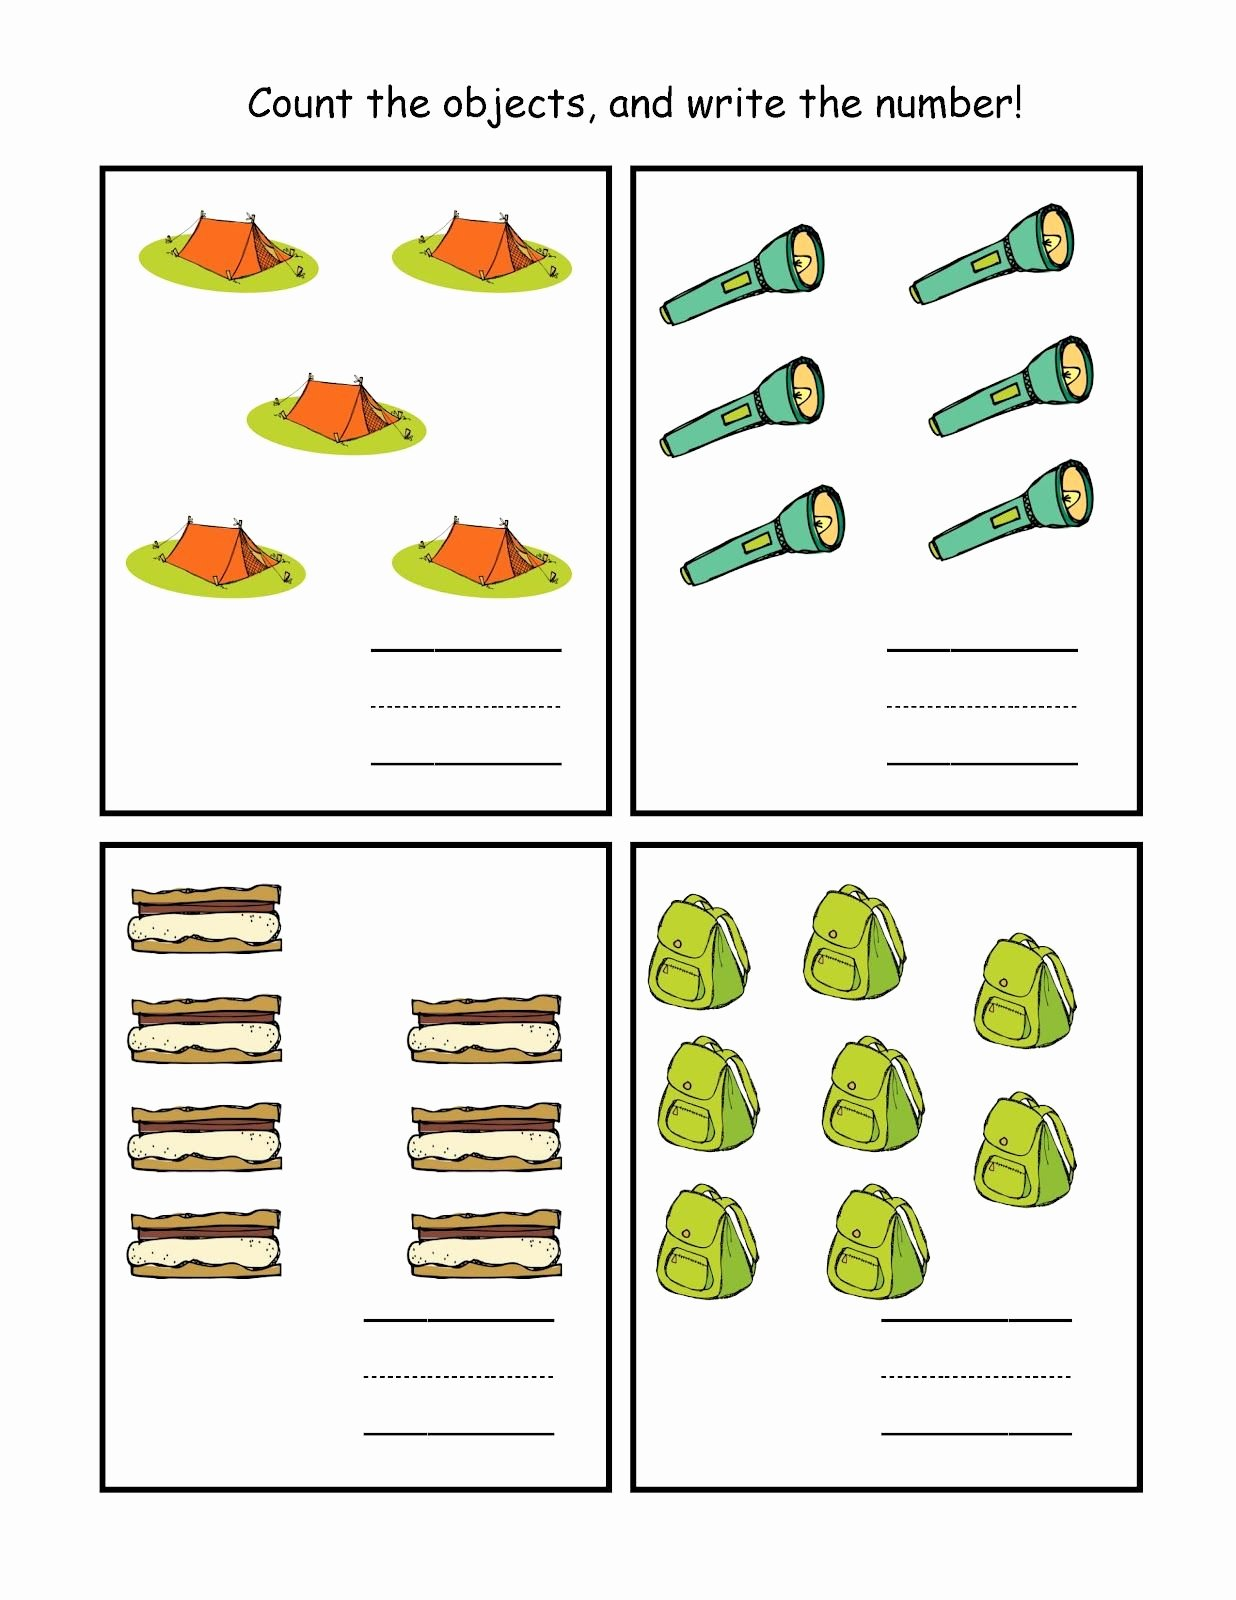 Camping Worksheets for Preschoolers Best Of Camping 5 8 1 236—1 600 Pixels